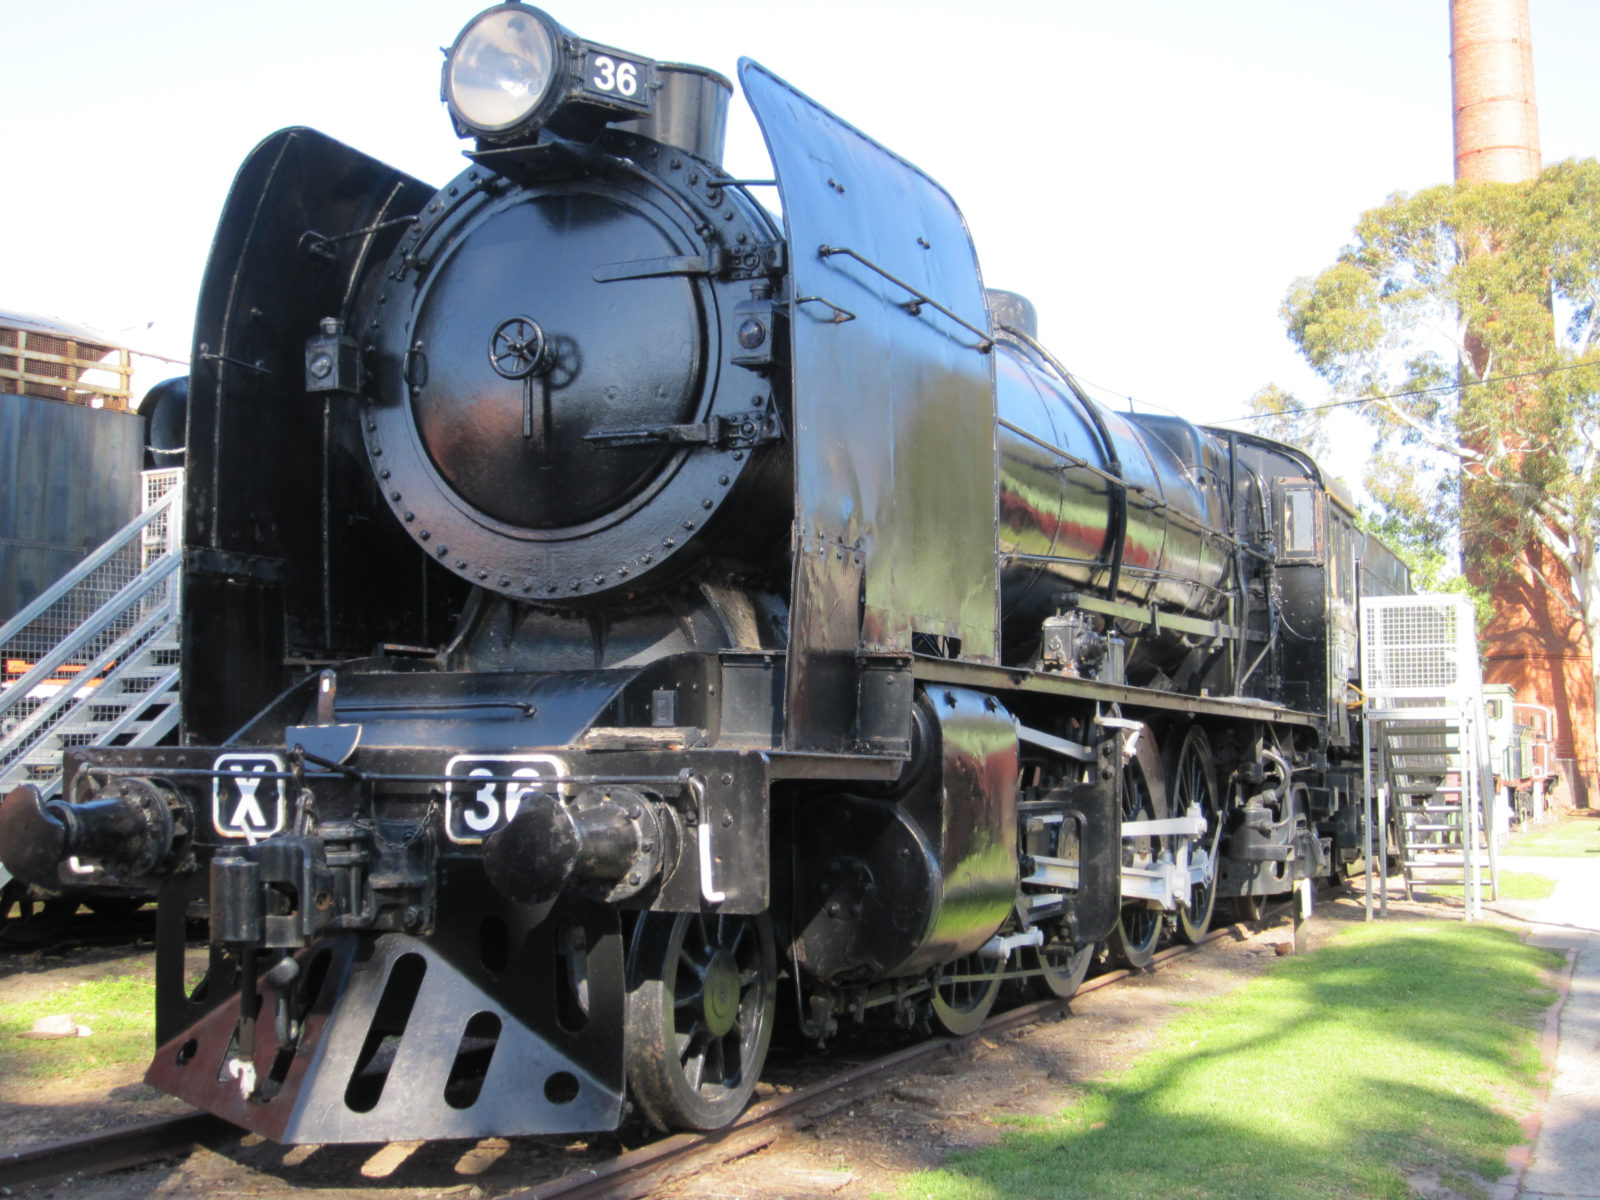 Locomotive X 36, built at Newport in 1929, its retirement in 1960 led to the founding of our museum